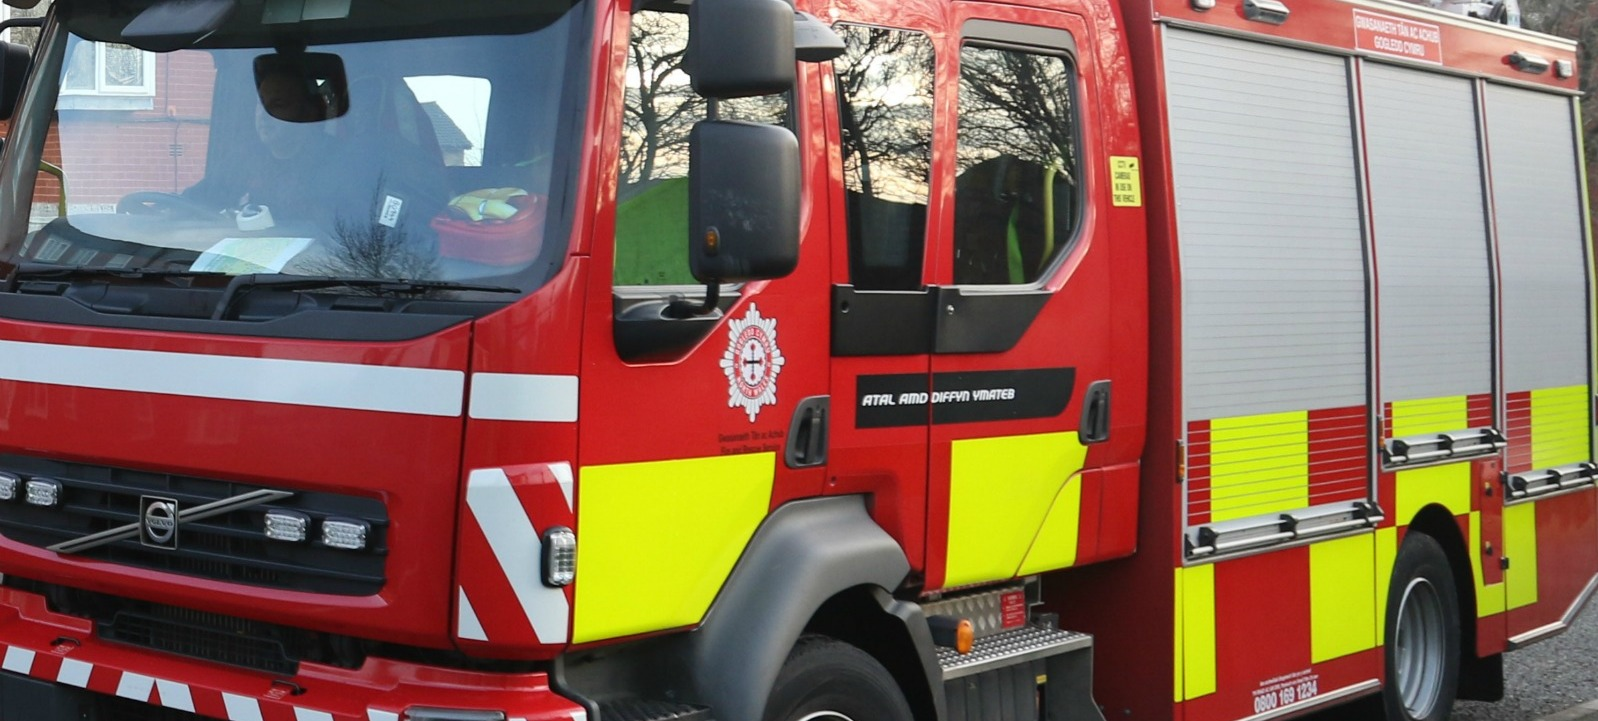 North Wales Fire Engine